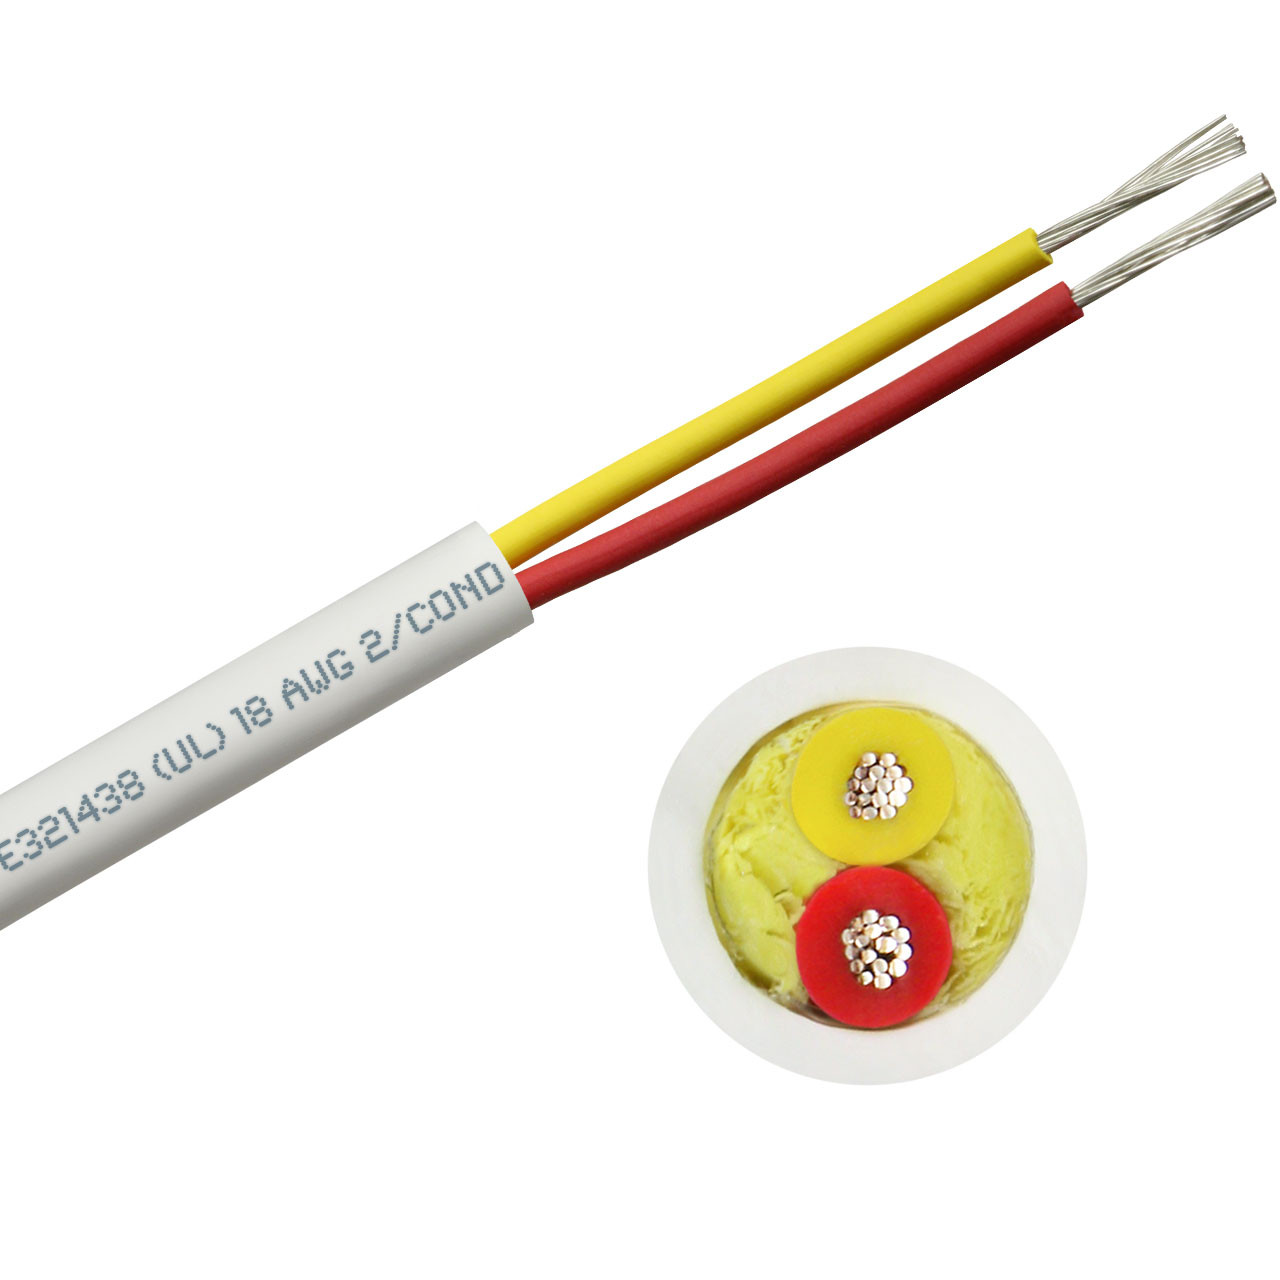 Round DC duplex marine boat cable with 18 AWG safety yellow and red conductors - 100 foot spool